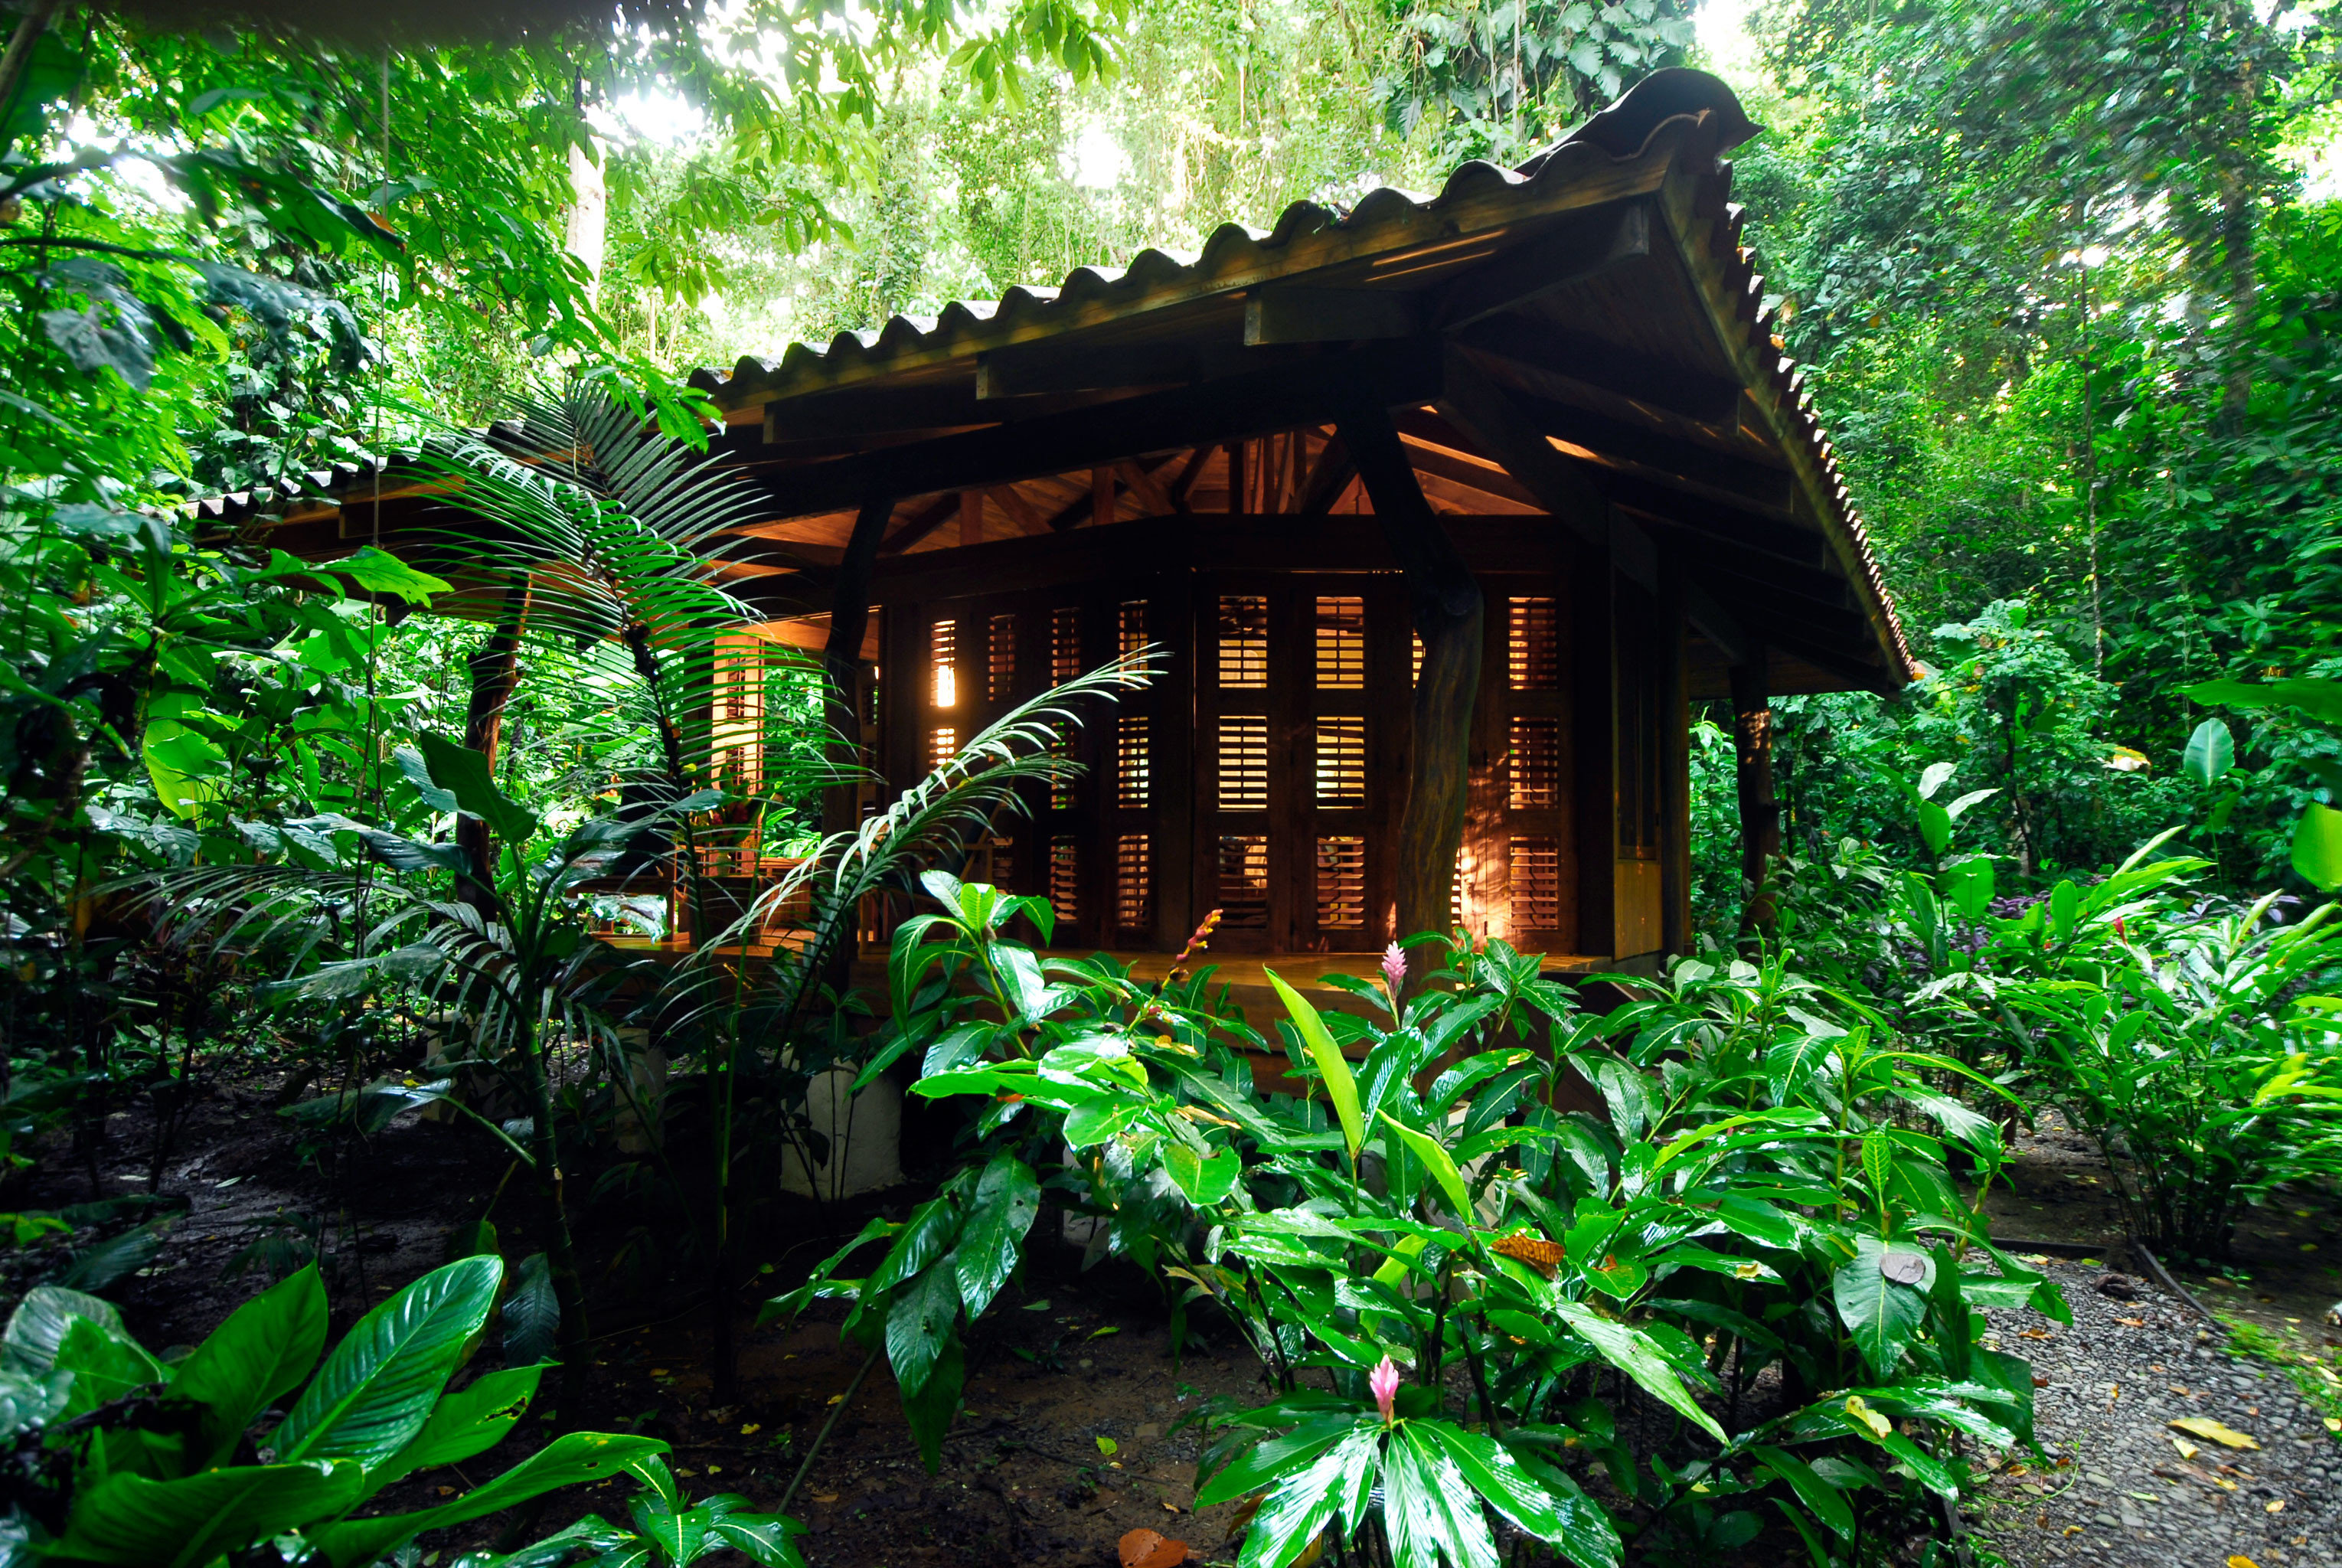 Adventure All-inclusive Budget Eco Exterior Grounds Honeymoon Jungle Outdoor Activities Outdoors Romantic Rustic tree outdoor habitat plant green natural environment rainforest Forest Garden botany woodland tropics house flower hut shrine wood bushes shade surrounded stone